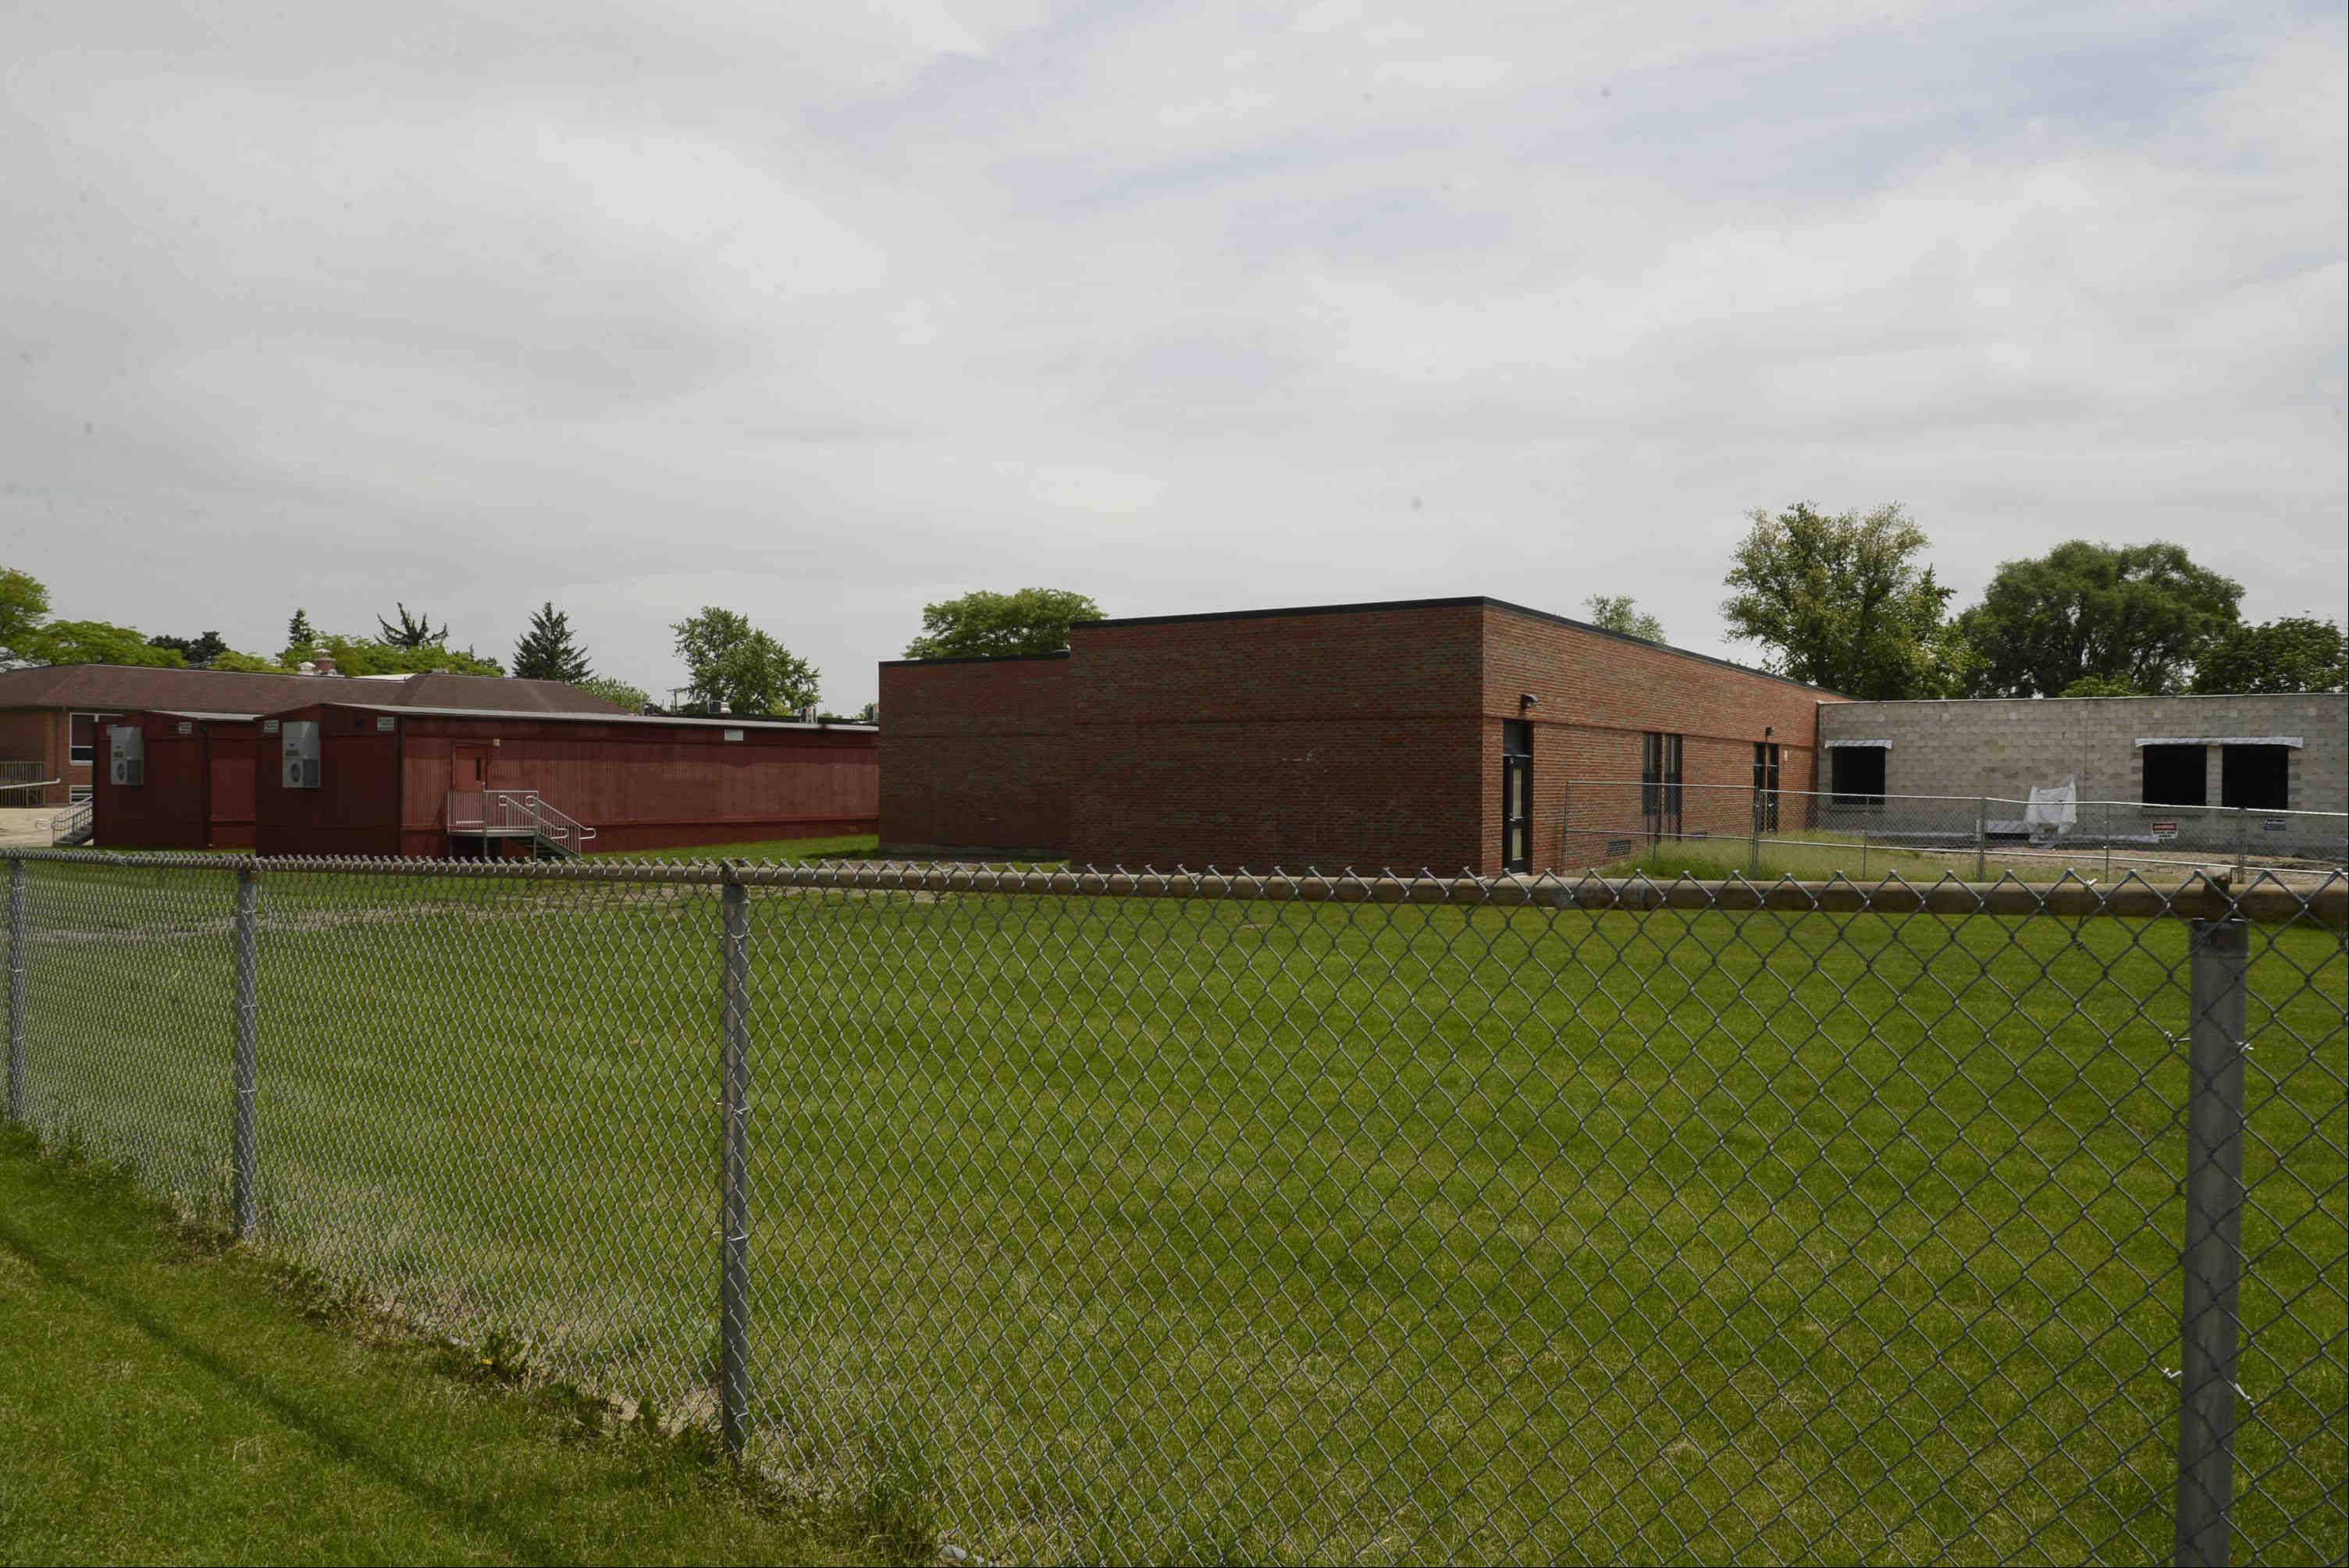 Ontarioville Elementary School in Hanover Park is getting five additional classrooms as part of a $3.5 million construction project being completed this summer. Many argue the district should skip the construction and shift its boundaries to relieve overcrowding.